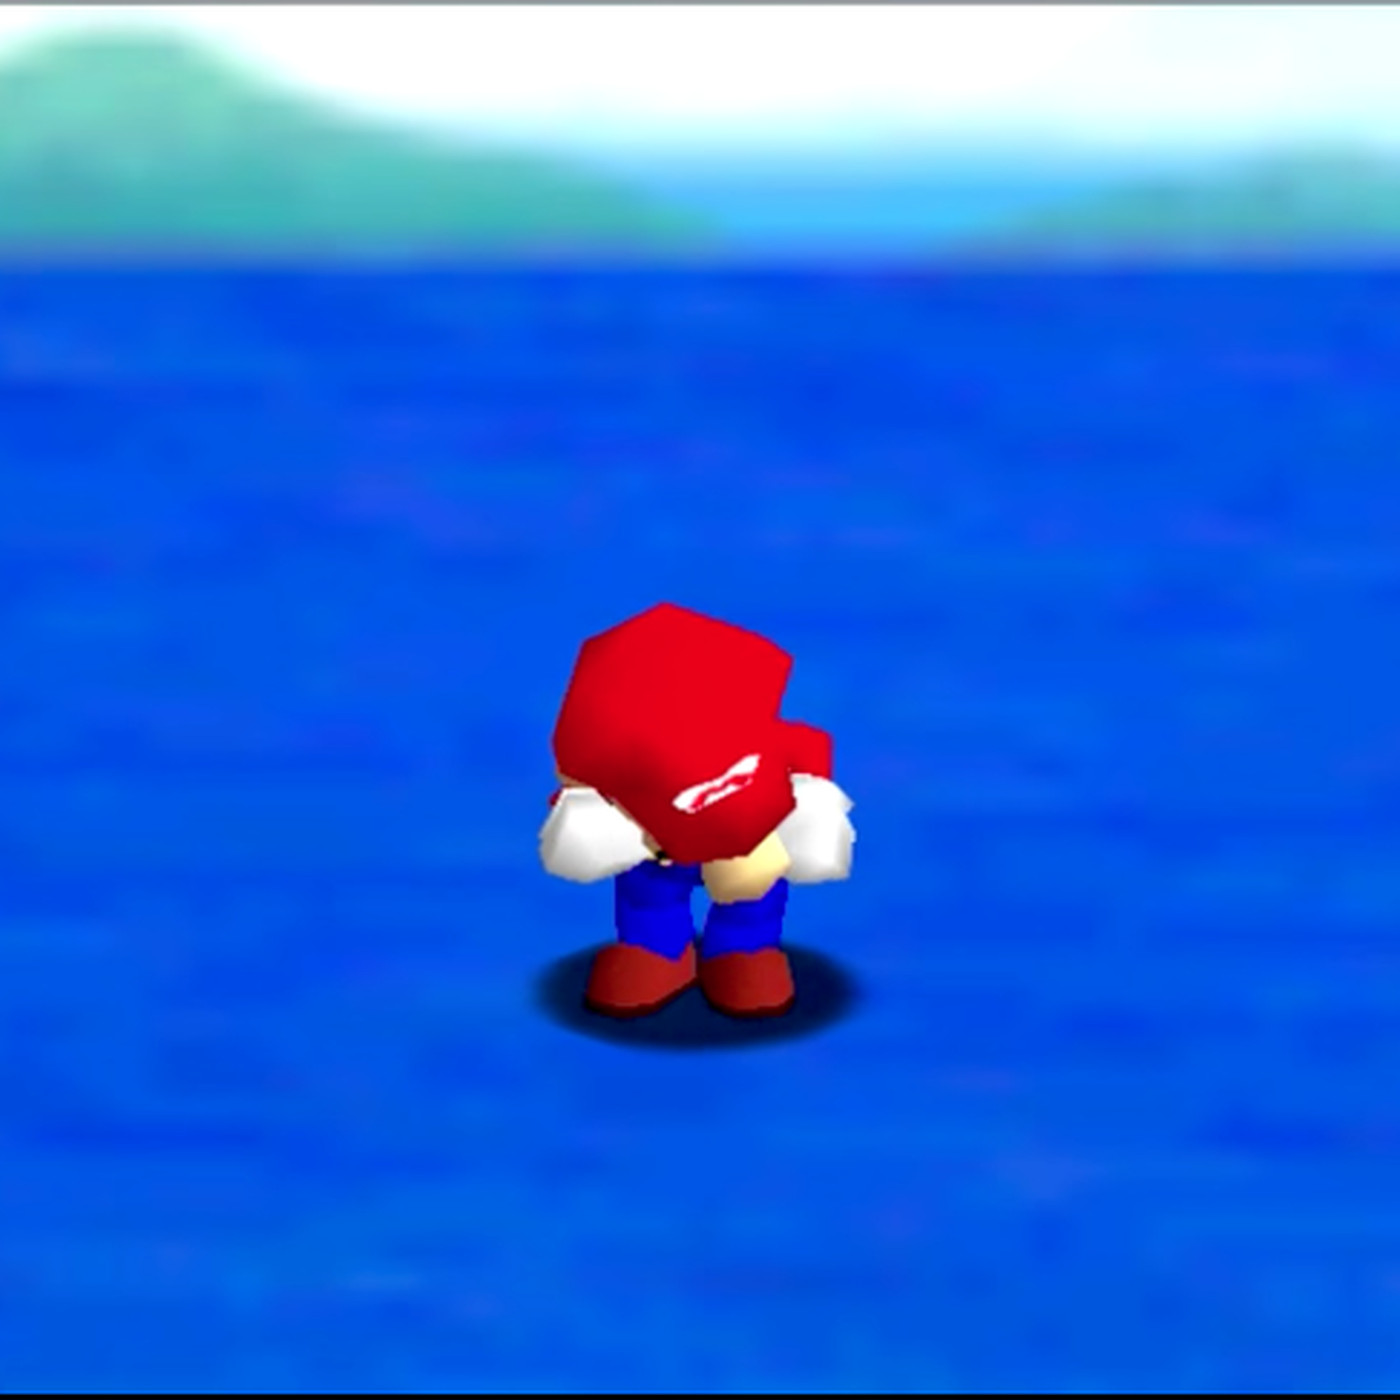 Mario crying in Super Mario 64 is pure and heartbreaking